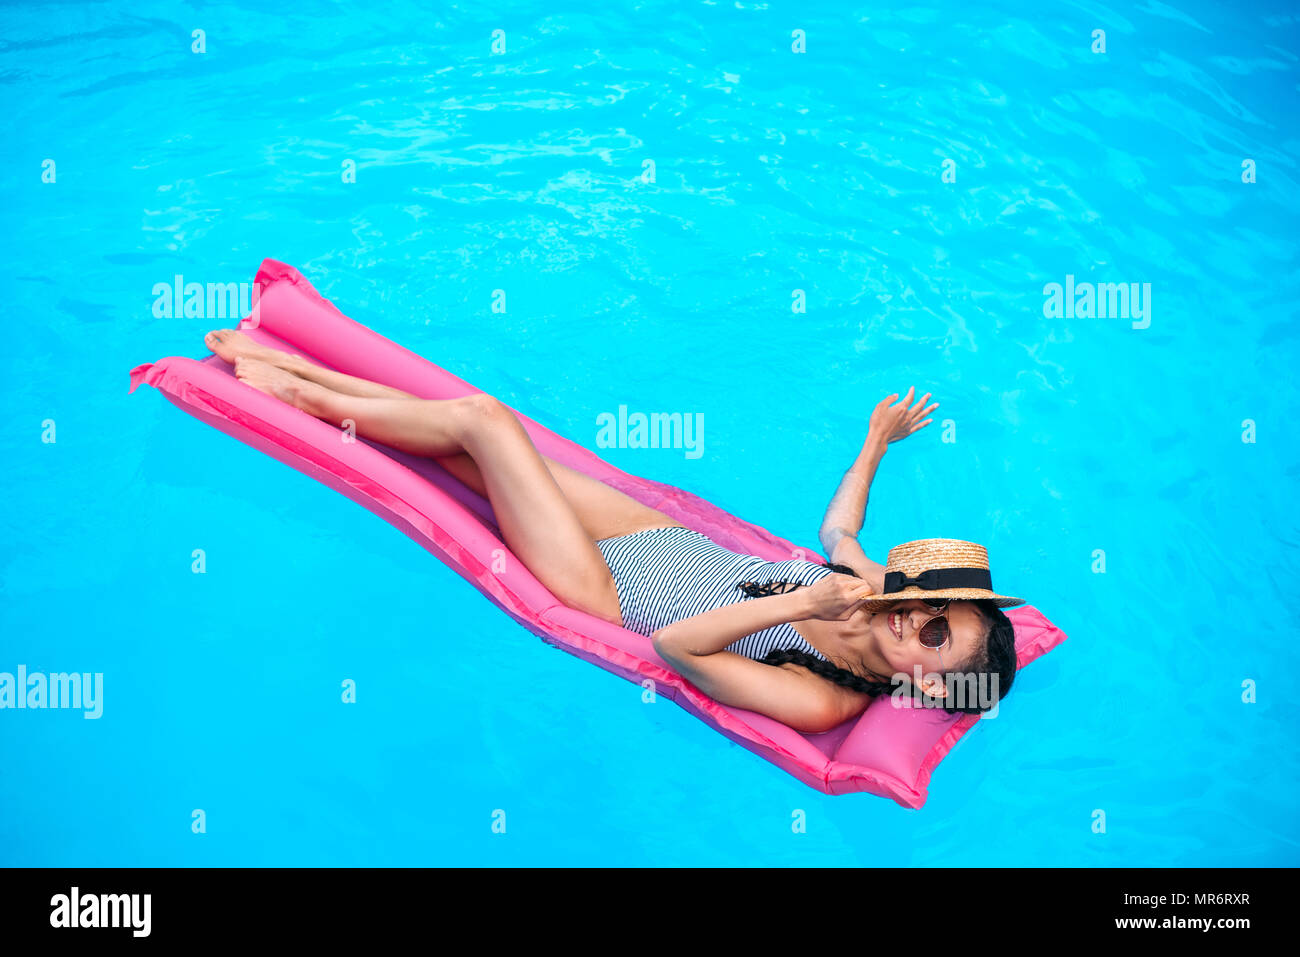 Young asian woman with straw hat covering face floating on inflatable mattress in swimming pool - Stock Image